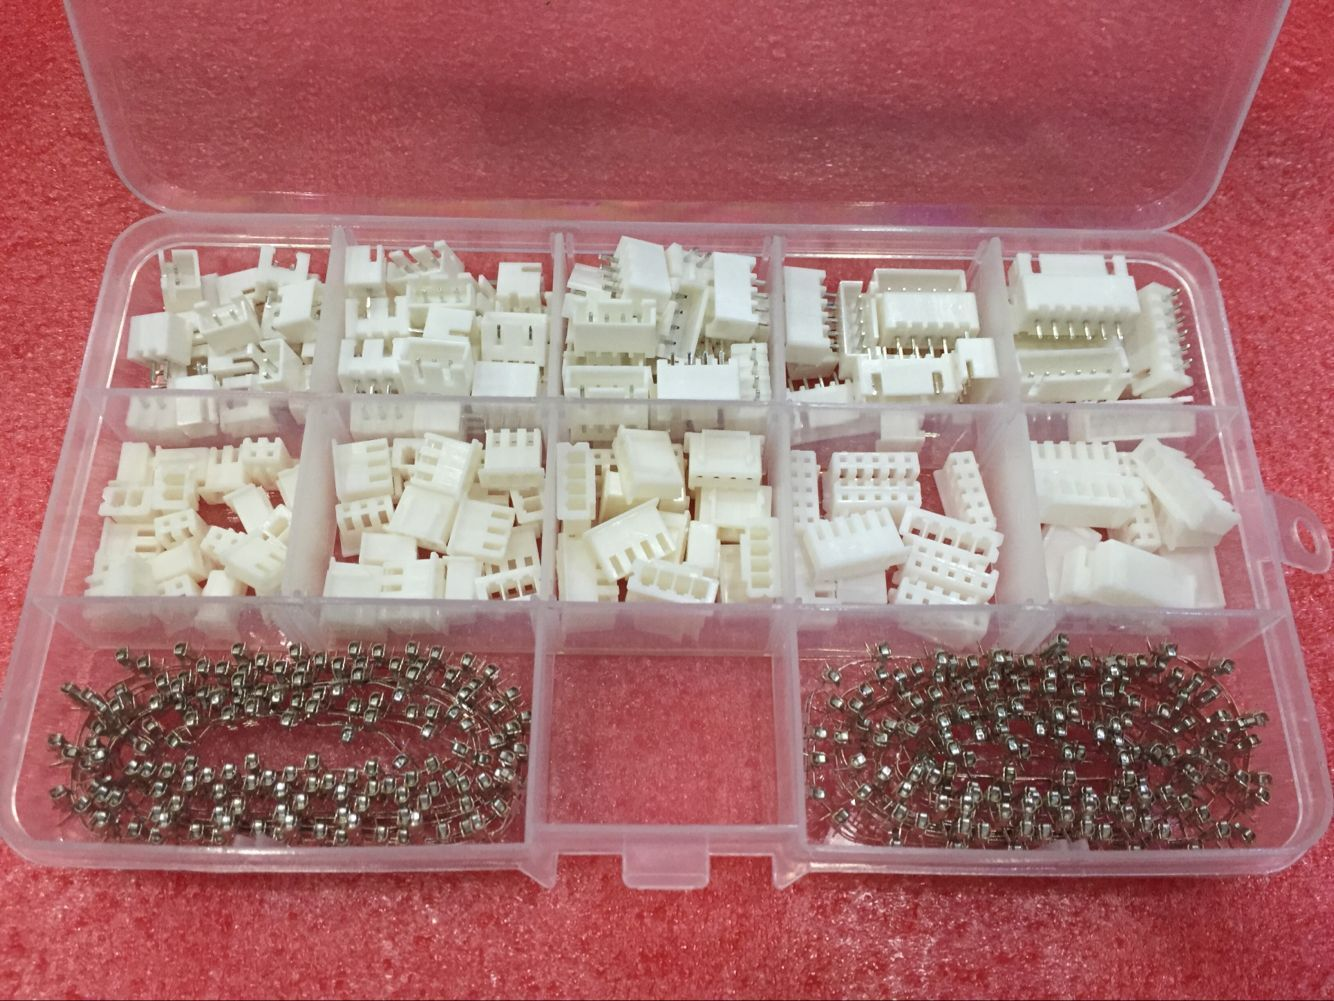 80 Sets Kit in box XH2.54 2p 3p 4p 5p 6 pin 2.54mm Pitch Terminal / Housing / Pin Header Connector Wire Connectors Adaptor XH2P